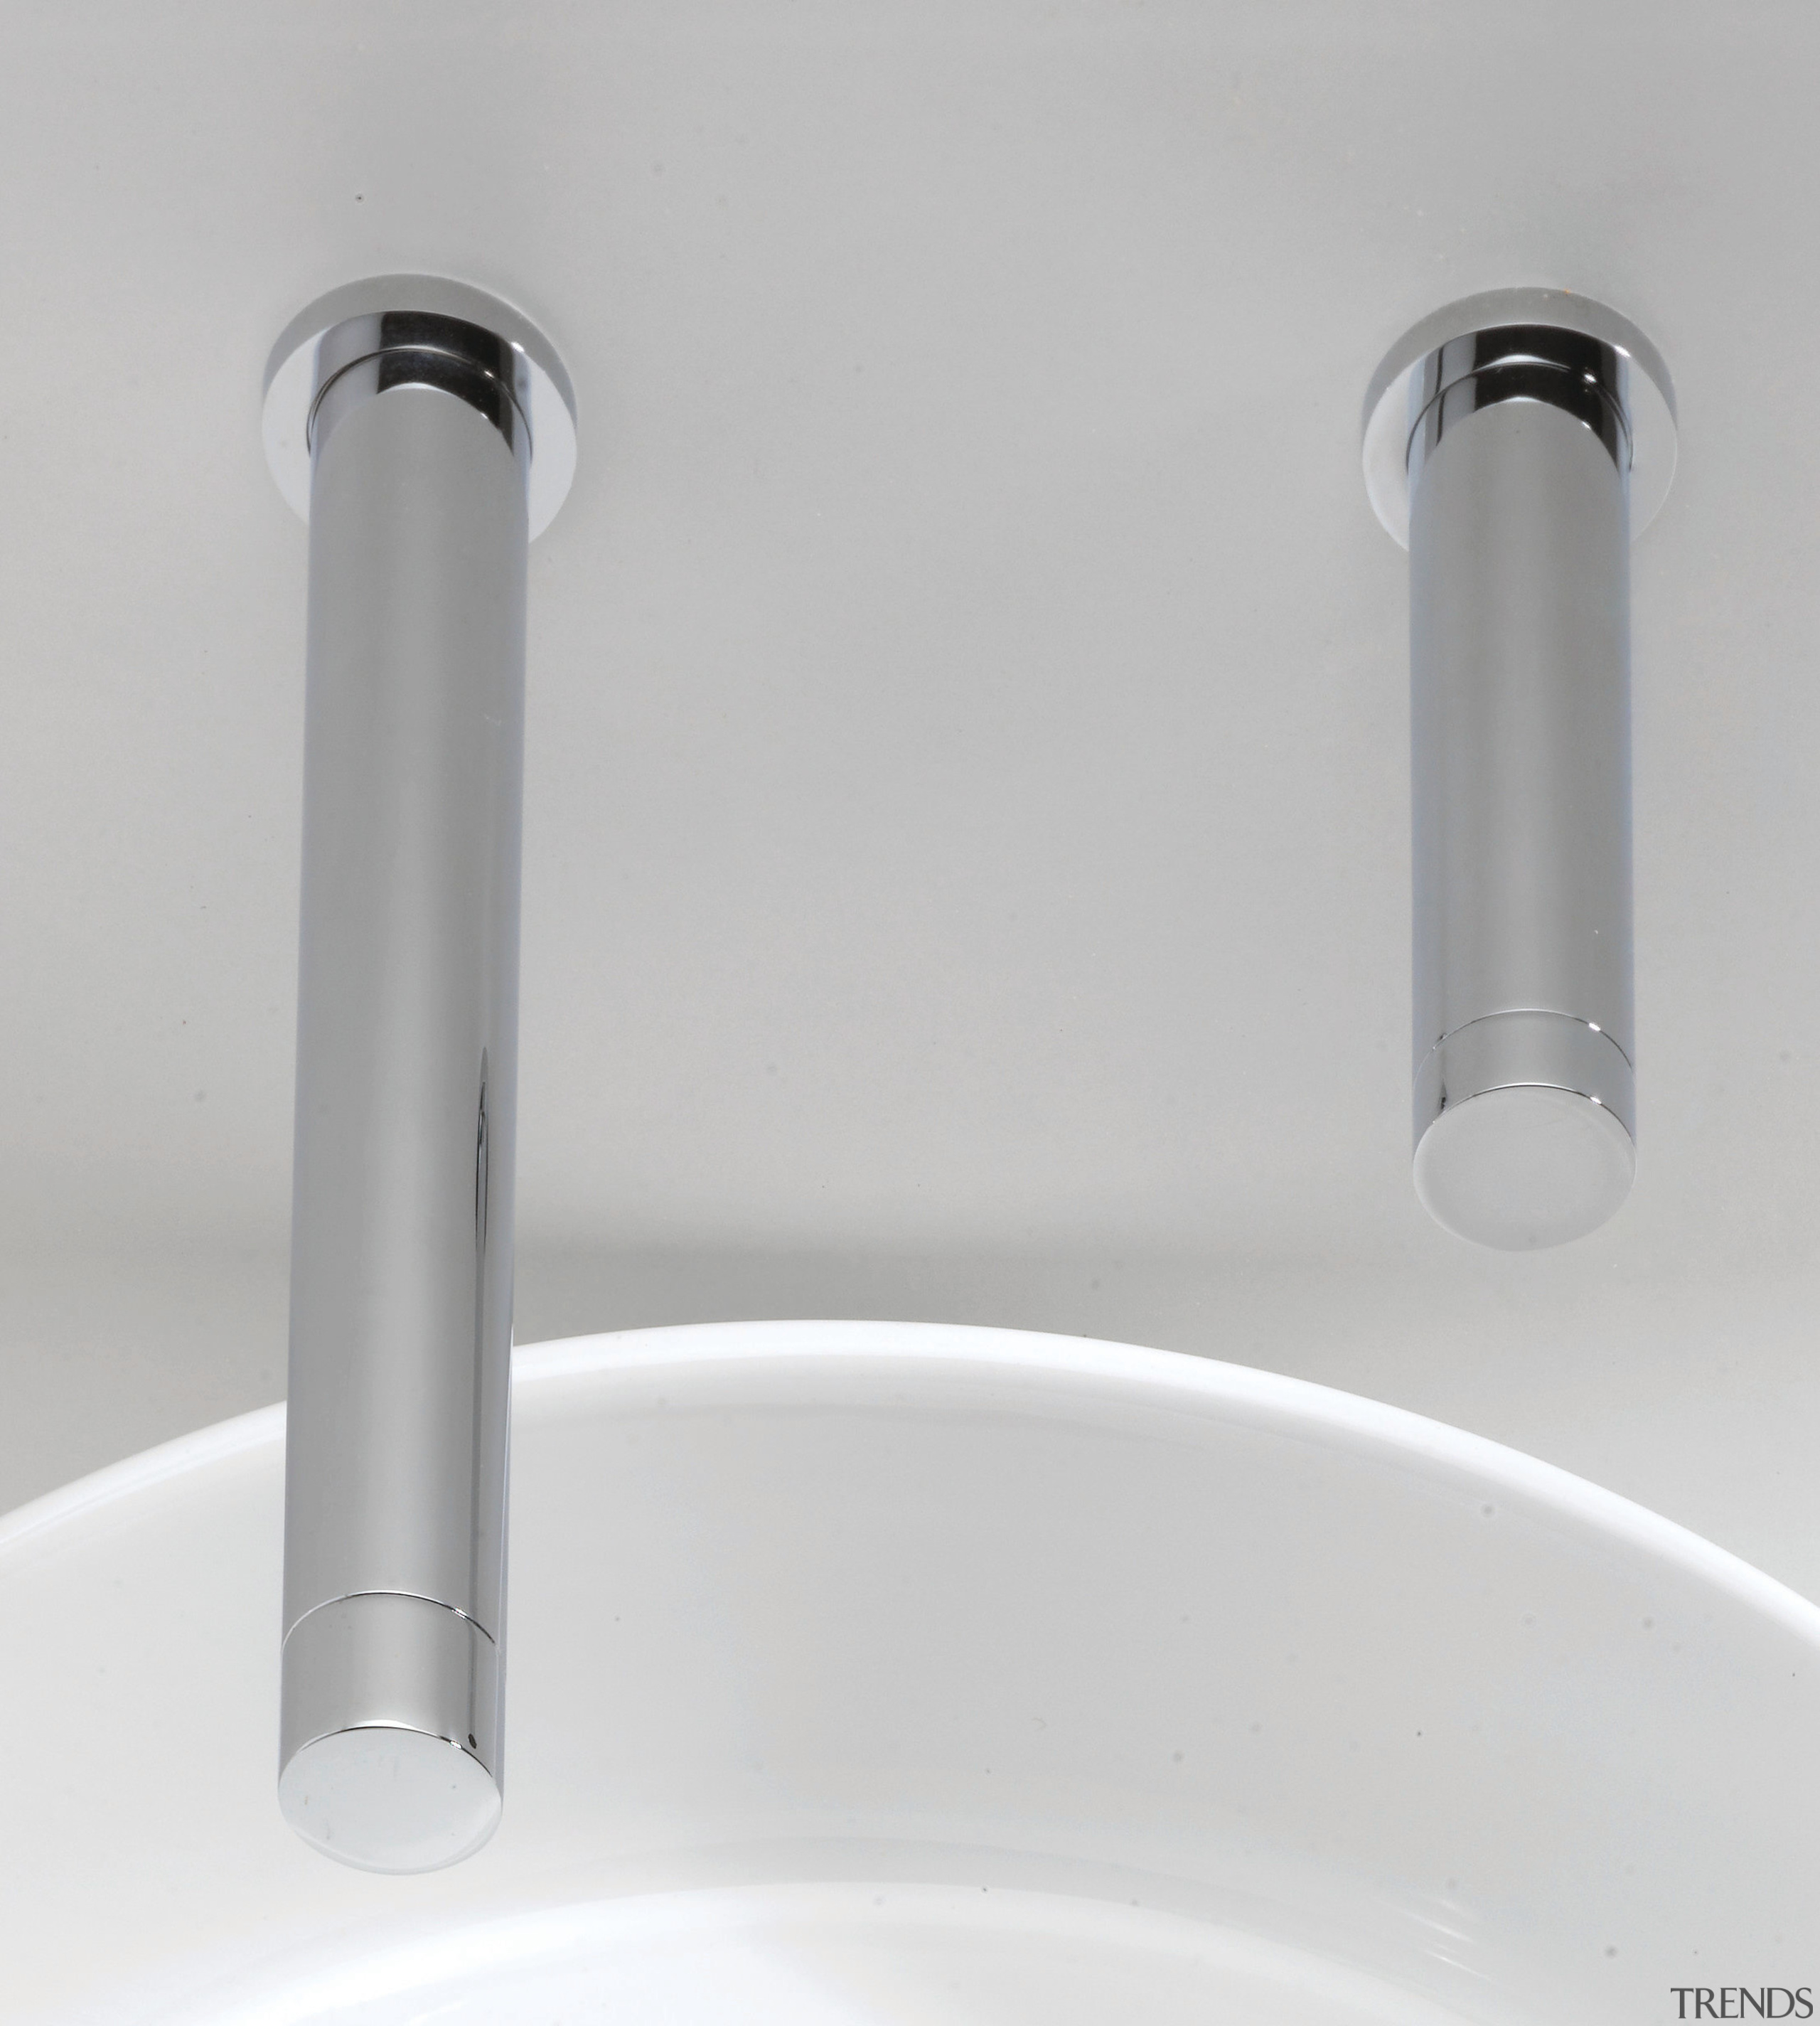 Zoom electronic faucets from Lacava automatically turn on plumbing fixture, product design, tap, gray